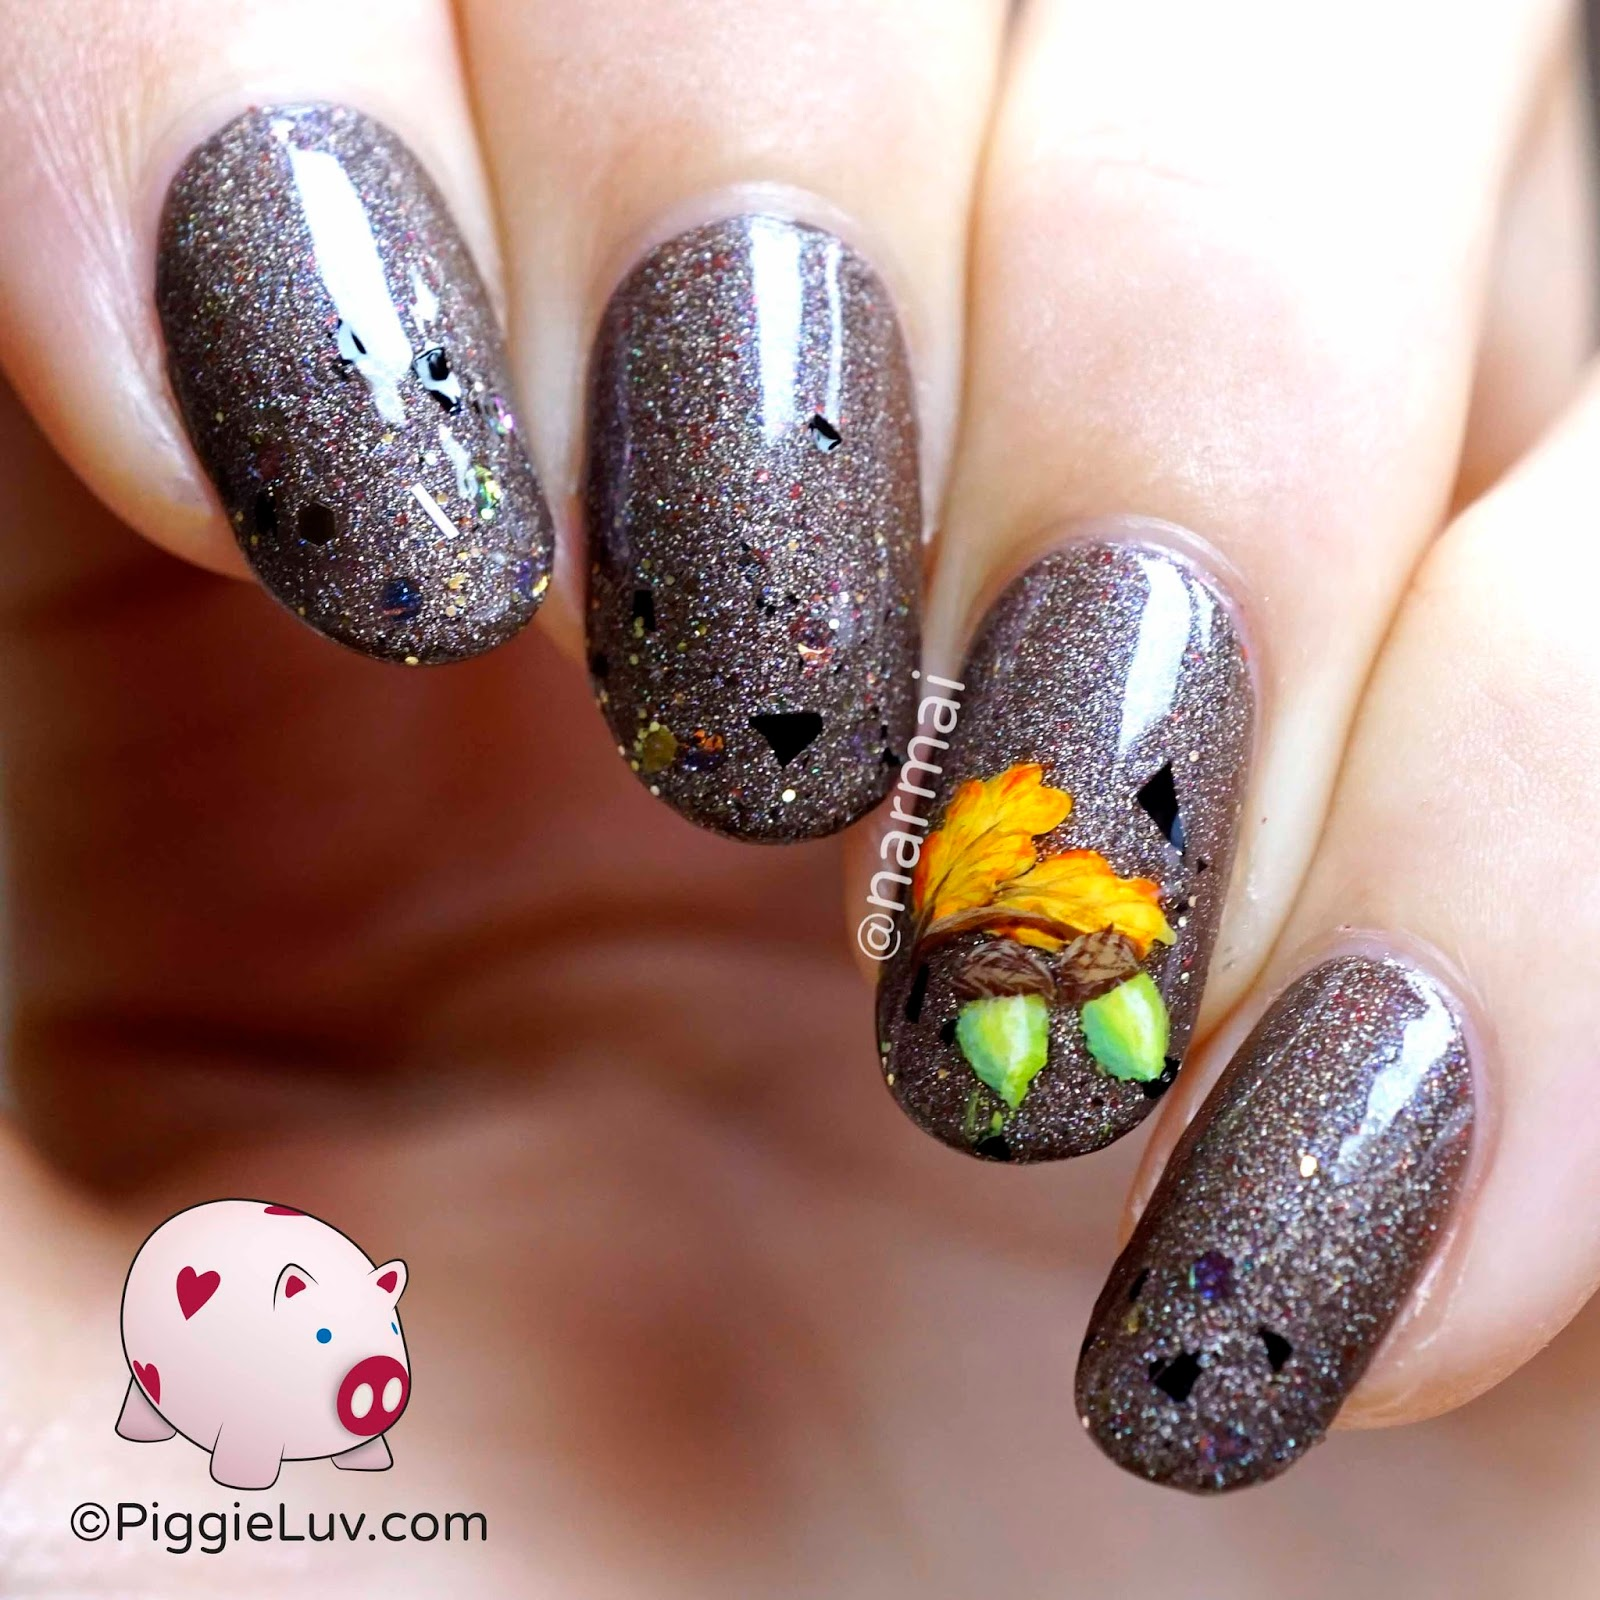 Piggieluv november nail the mail box review nail art november nail the mail box review nail art prinsesfo Gallery